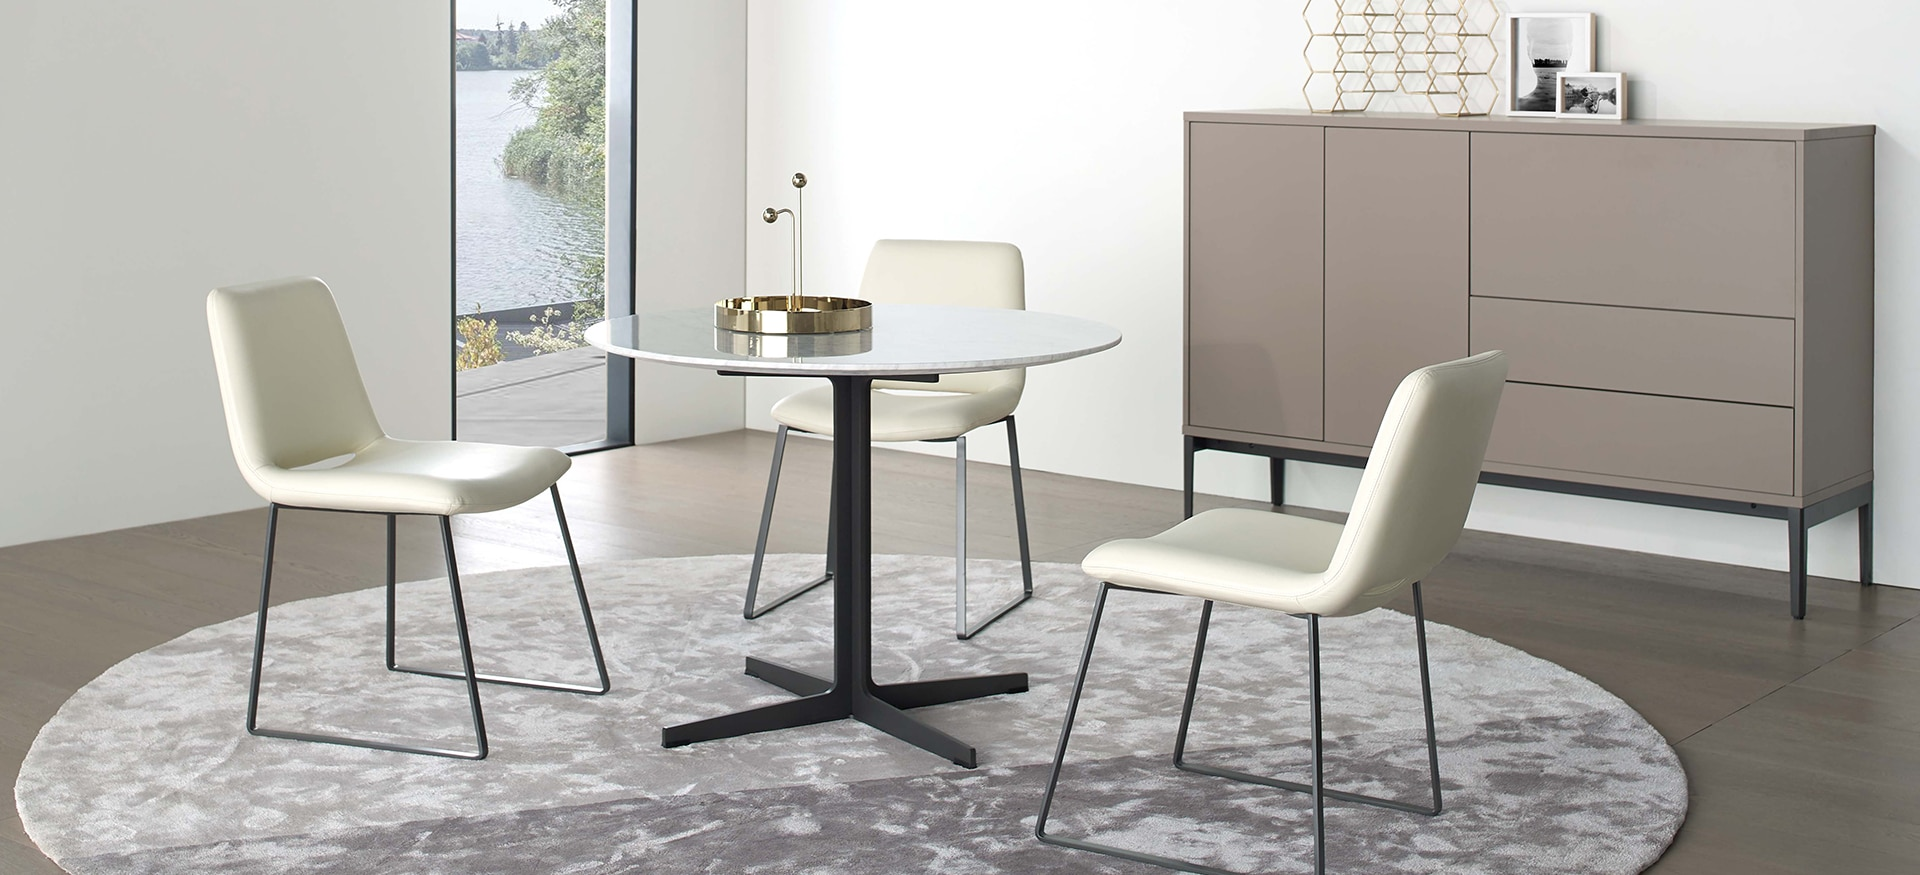 Vary Dining Table